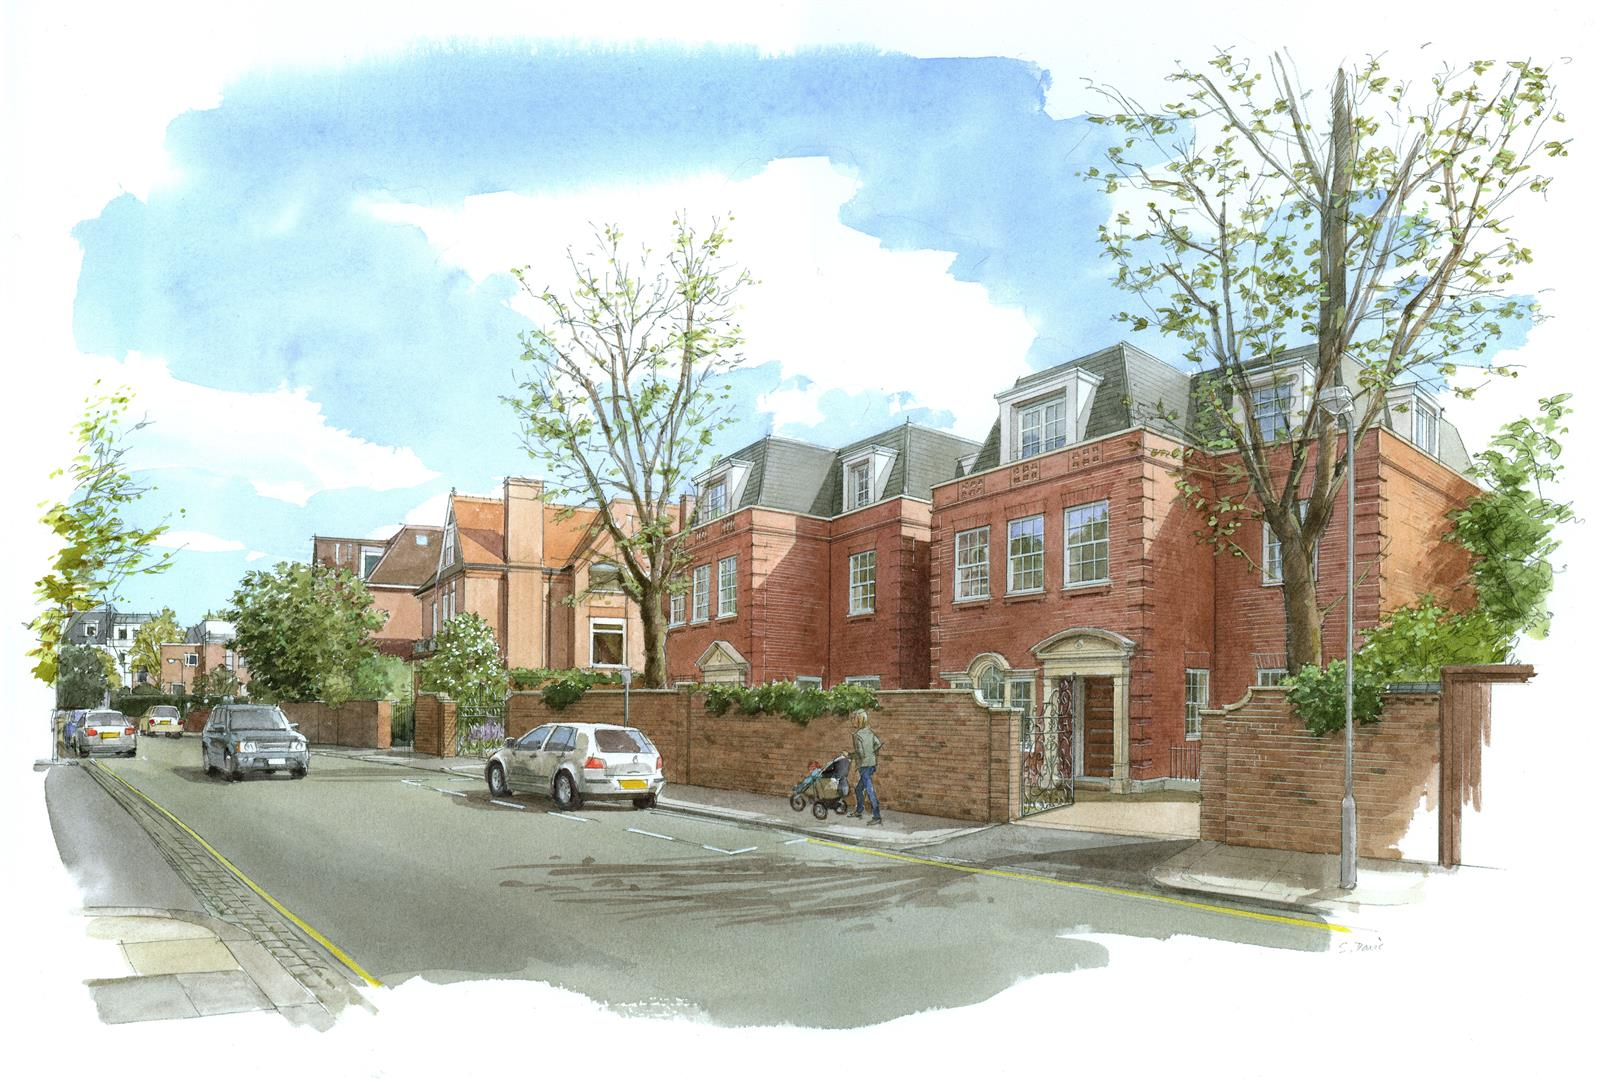 6 Bedrooms House for sale in Nutley Terrace, Hampstead, NW3